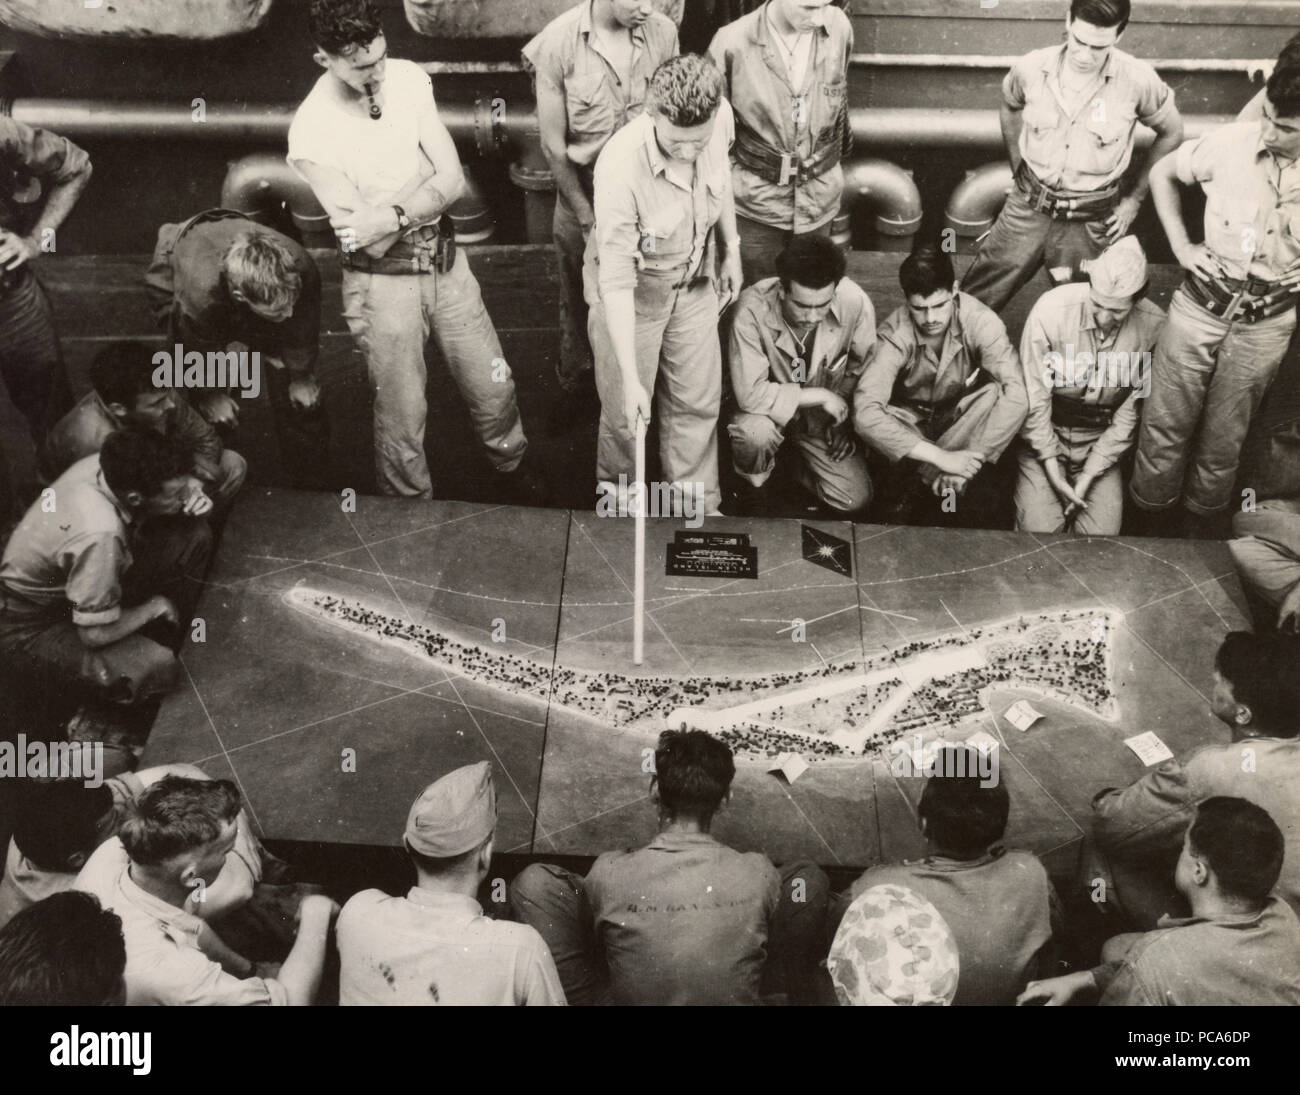 Marines study a relief model of Tarawa Atoll a few days before battle. Created by 2nd divison marines Relief Mapping Section. - Stock Image